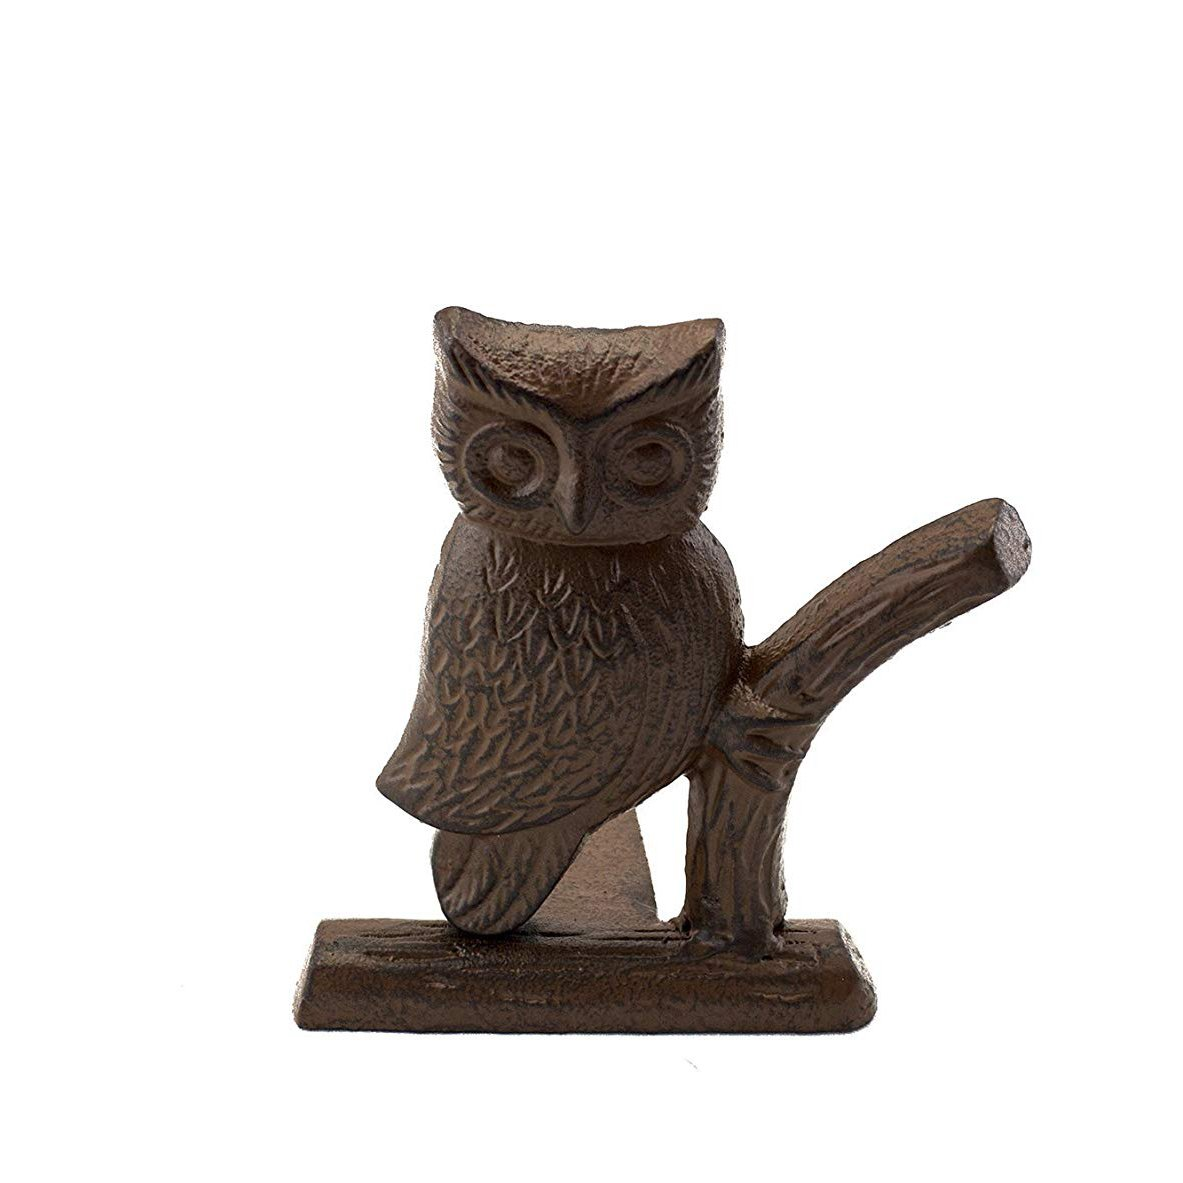 "Comfify Cast Iron Owl Door Stop | Decorative Door Stopper Wedge | with Padded Anti-scratch Felt Bottom | Vintage Design | 6x6.5x6.3"" by (Rust Brown)"